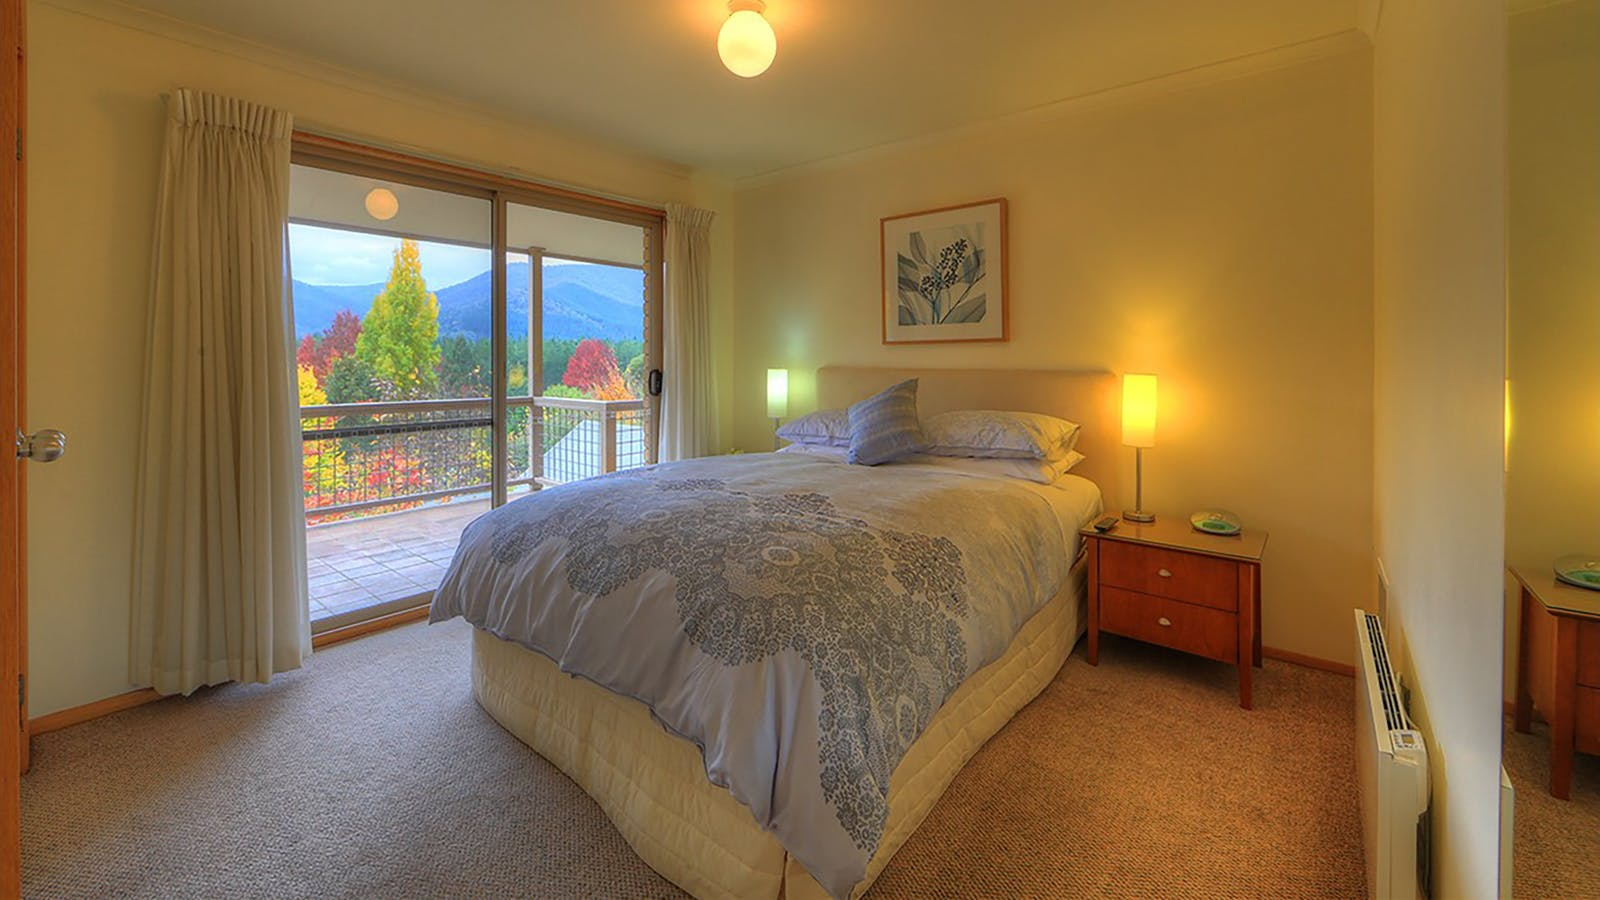 Luxurious comfort and amazing views